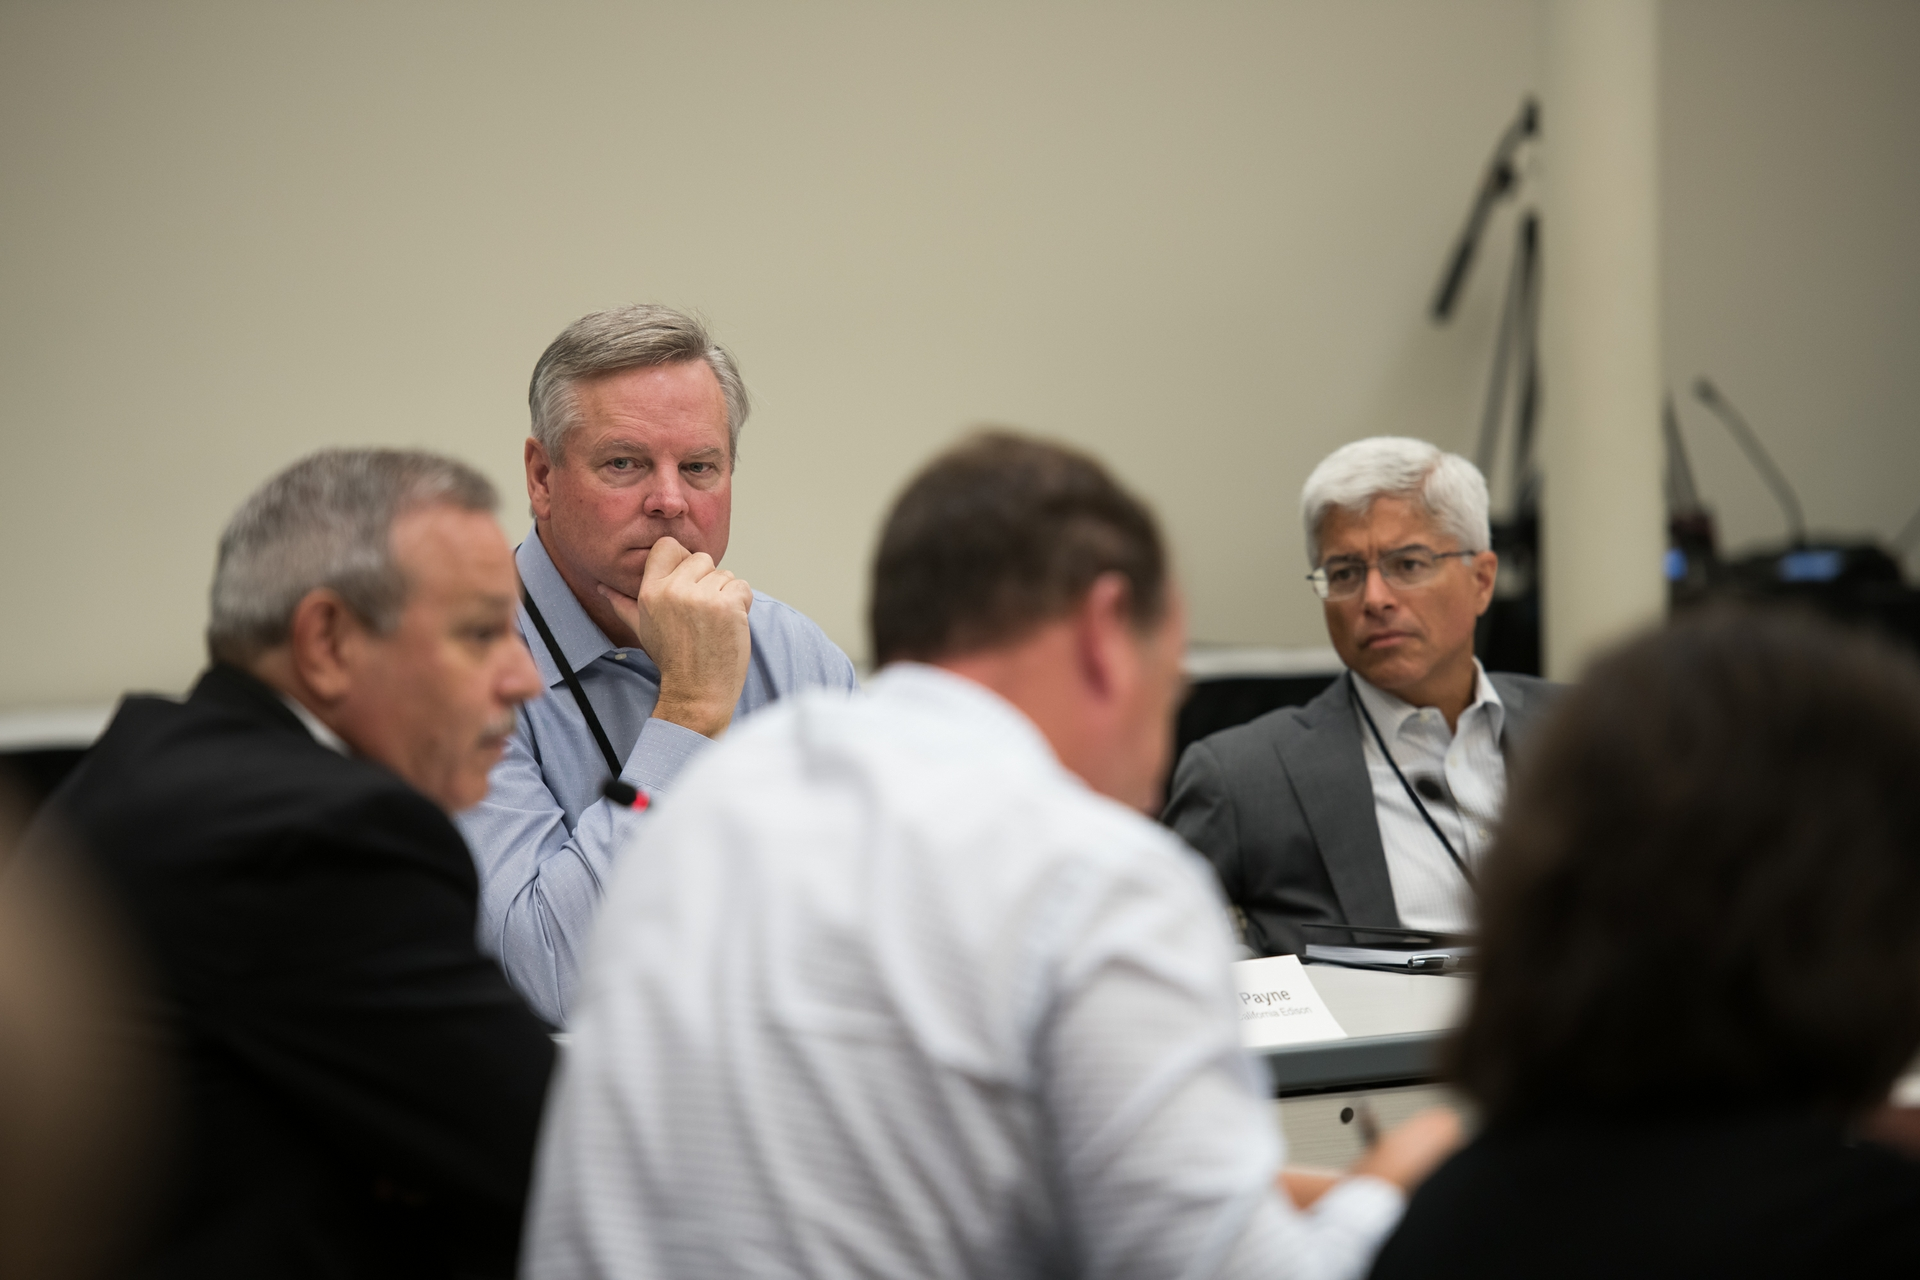 SCE President and CEO Kevin Payne and Edison International CEO and President Pedro Pizarro joined local, state and federal officials in a roundtable discussion to talk about the impacts a quake could have on the region.